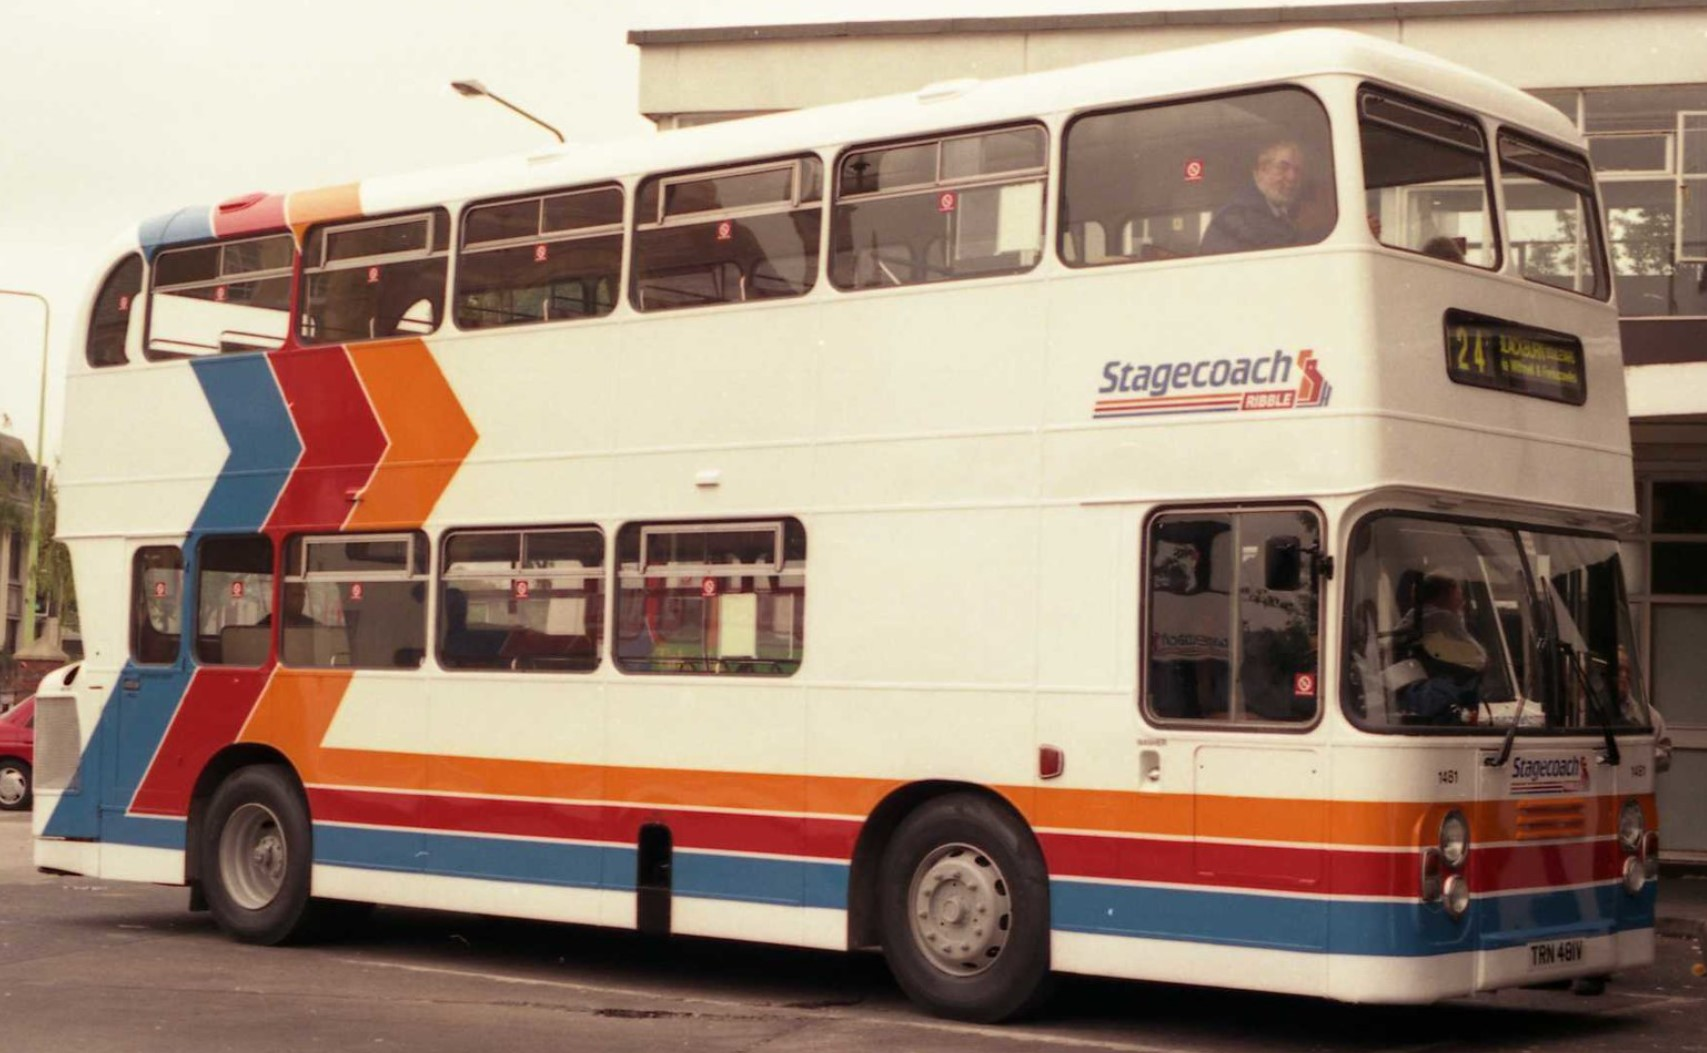 TRN 481V at Ribble Bus Station, Chorley in the 1990s. ©Public Domain